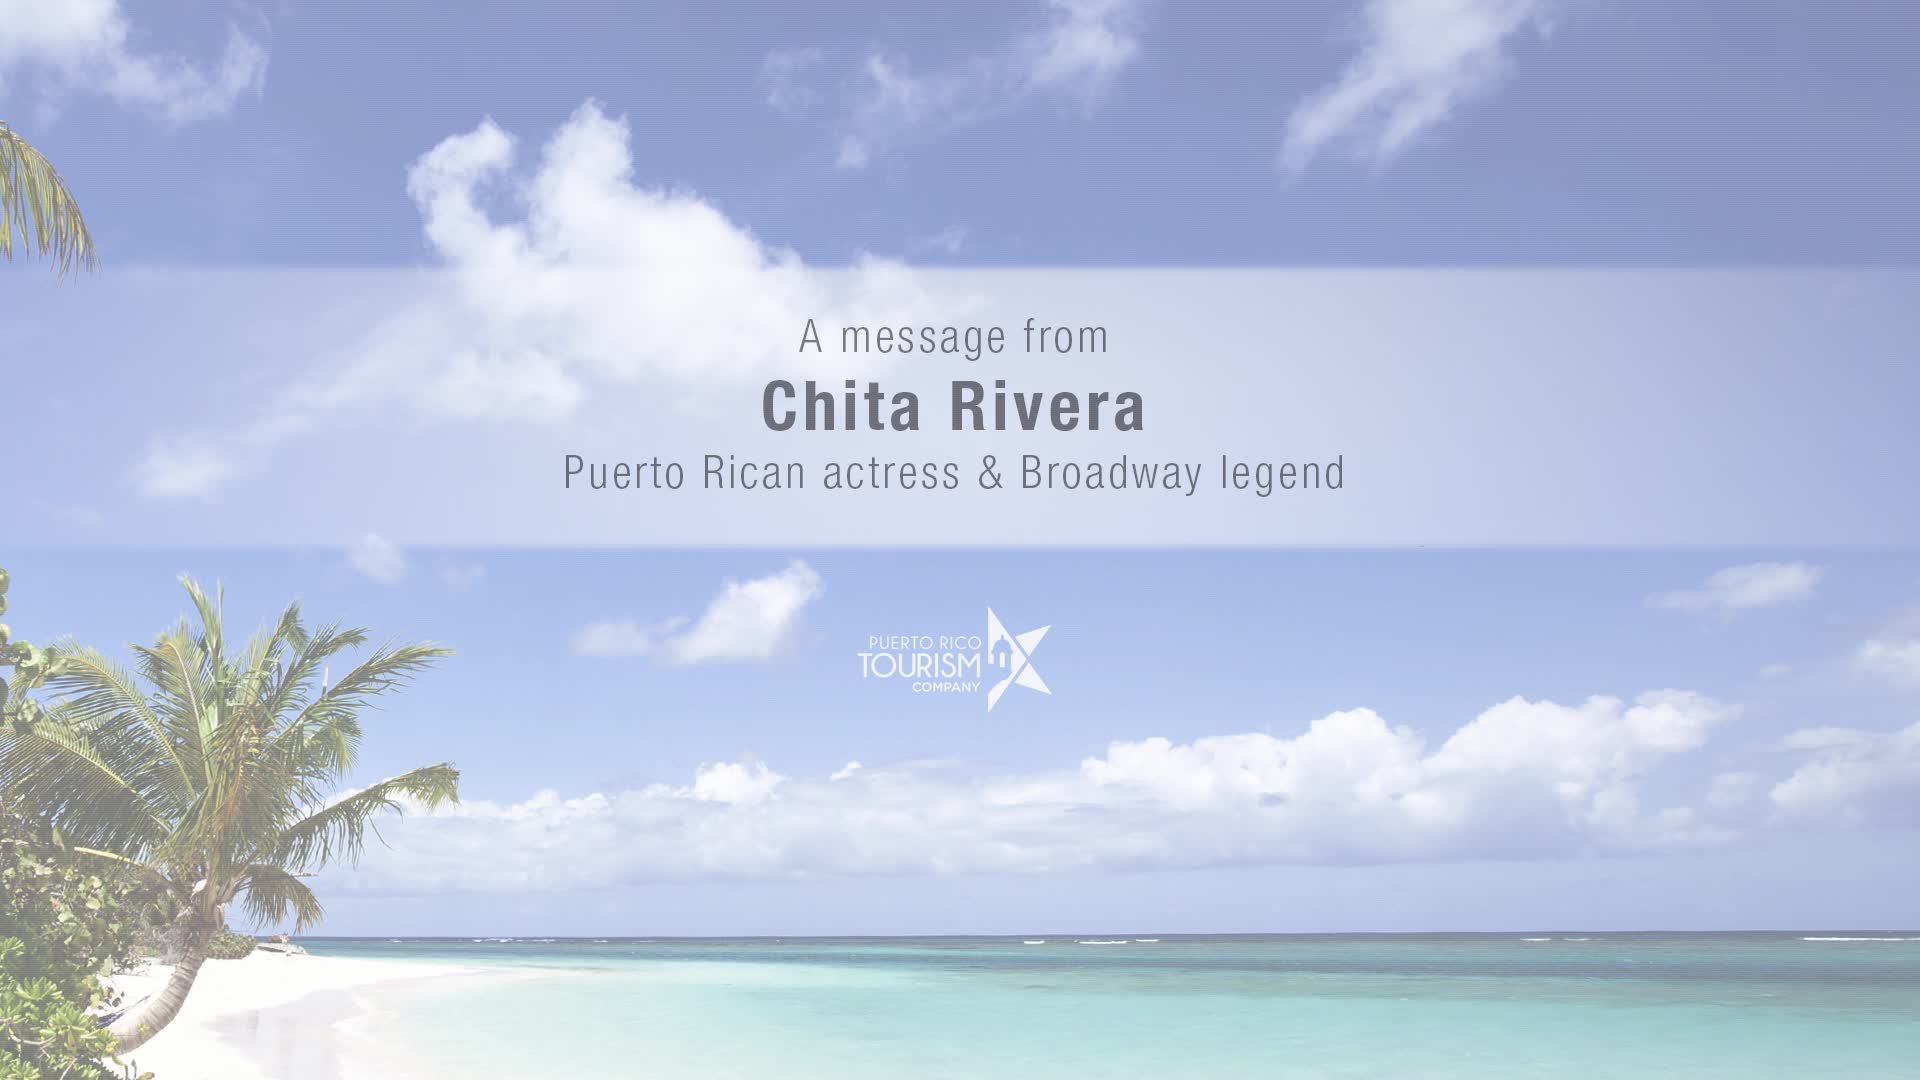 Chita Rivera has weighed in to celebrate her homeland and support the fight against Zika. (Video Credit: Puerto Rico Tourism Company)